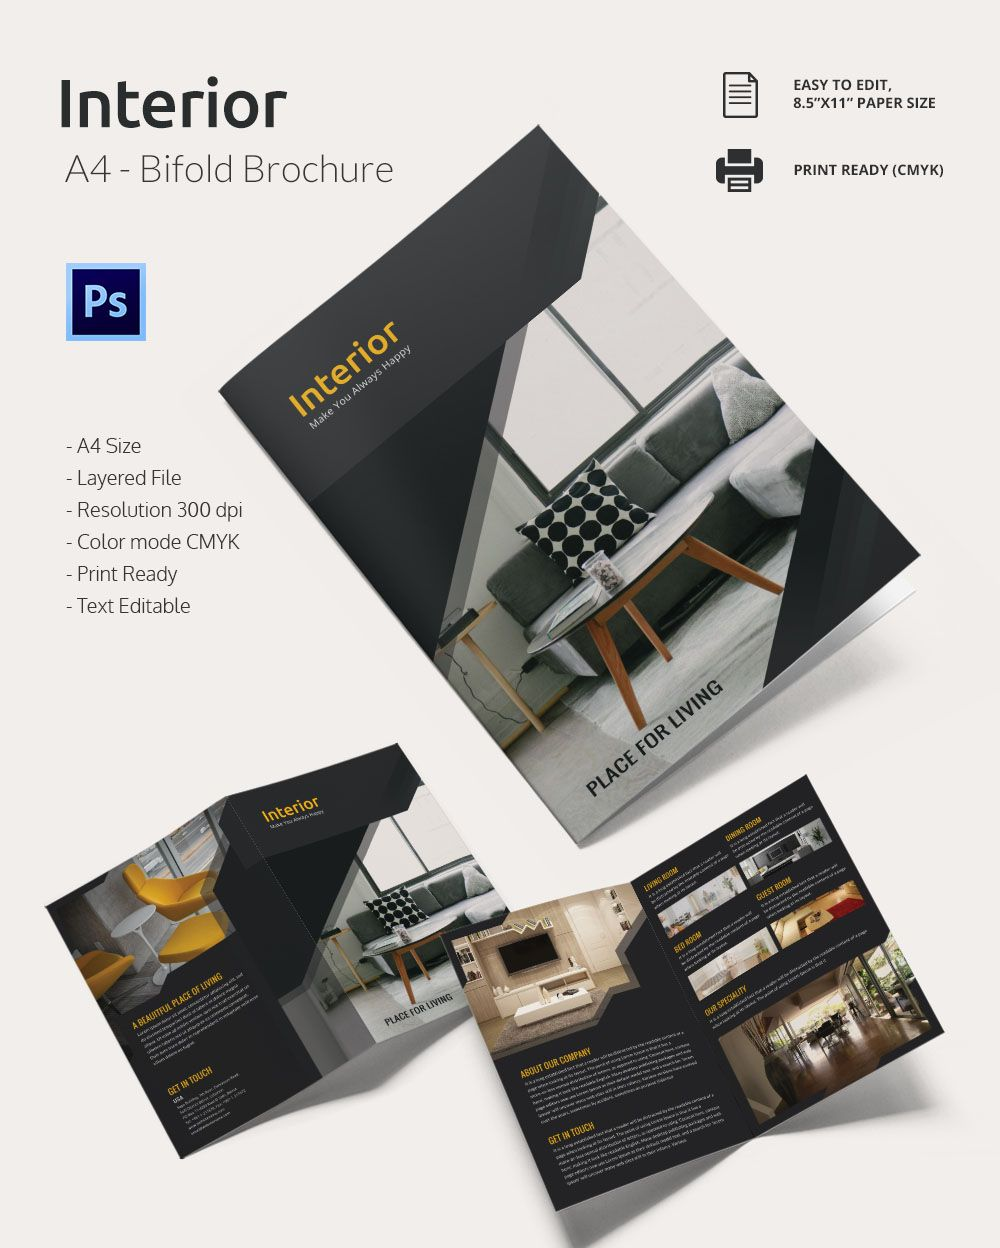 Interior design brochure 20 free psd eps indesign format template pinterest brochures Free interior design